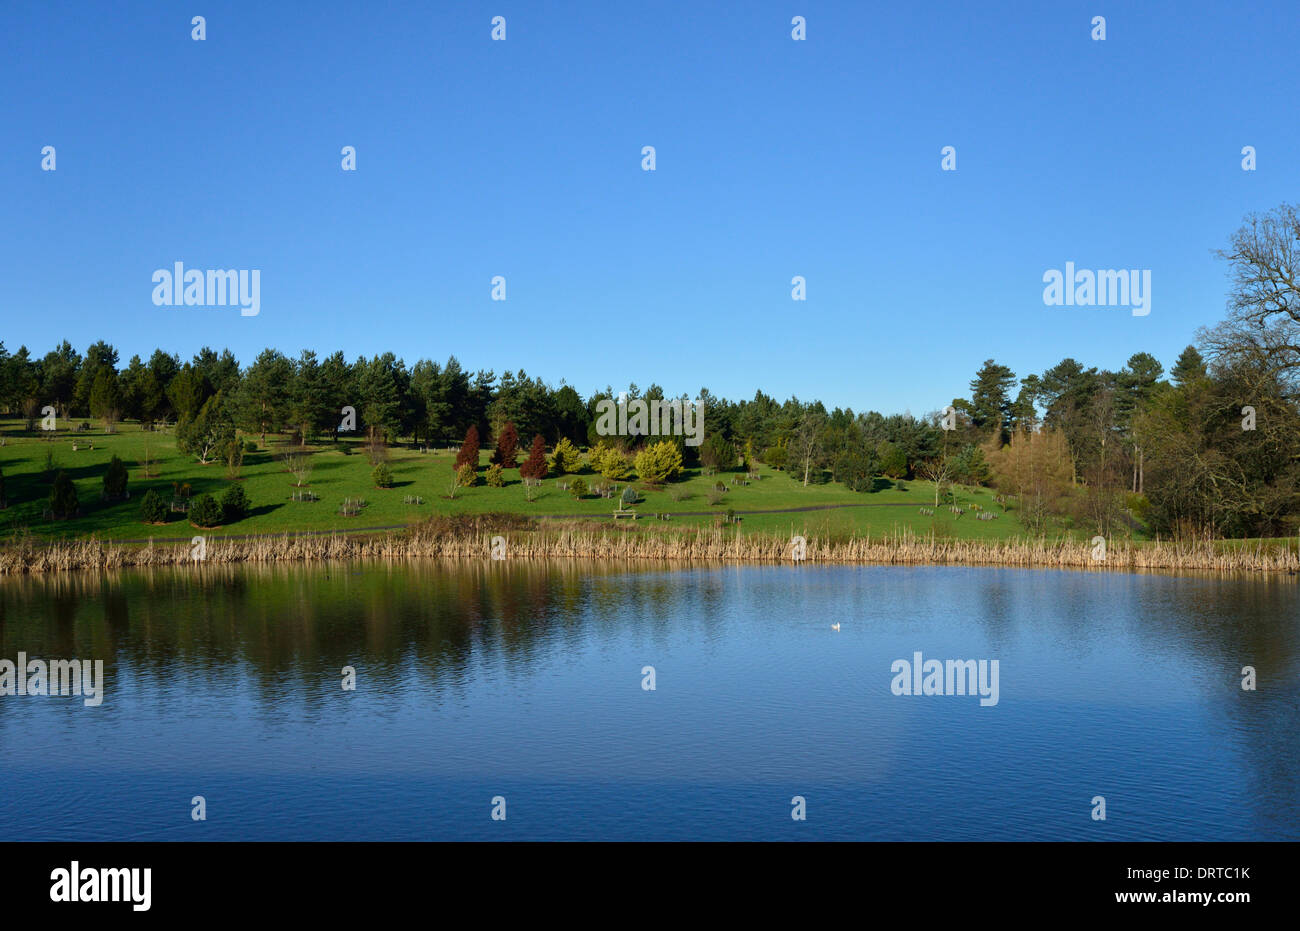 Bedgebury National Pinetum and Forest, Goudhurst, Kent, TN17 2SJ, United Kingdom - Stock Image